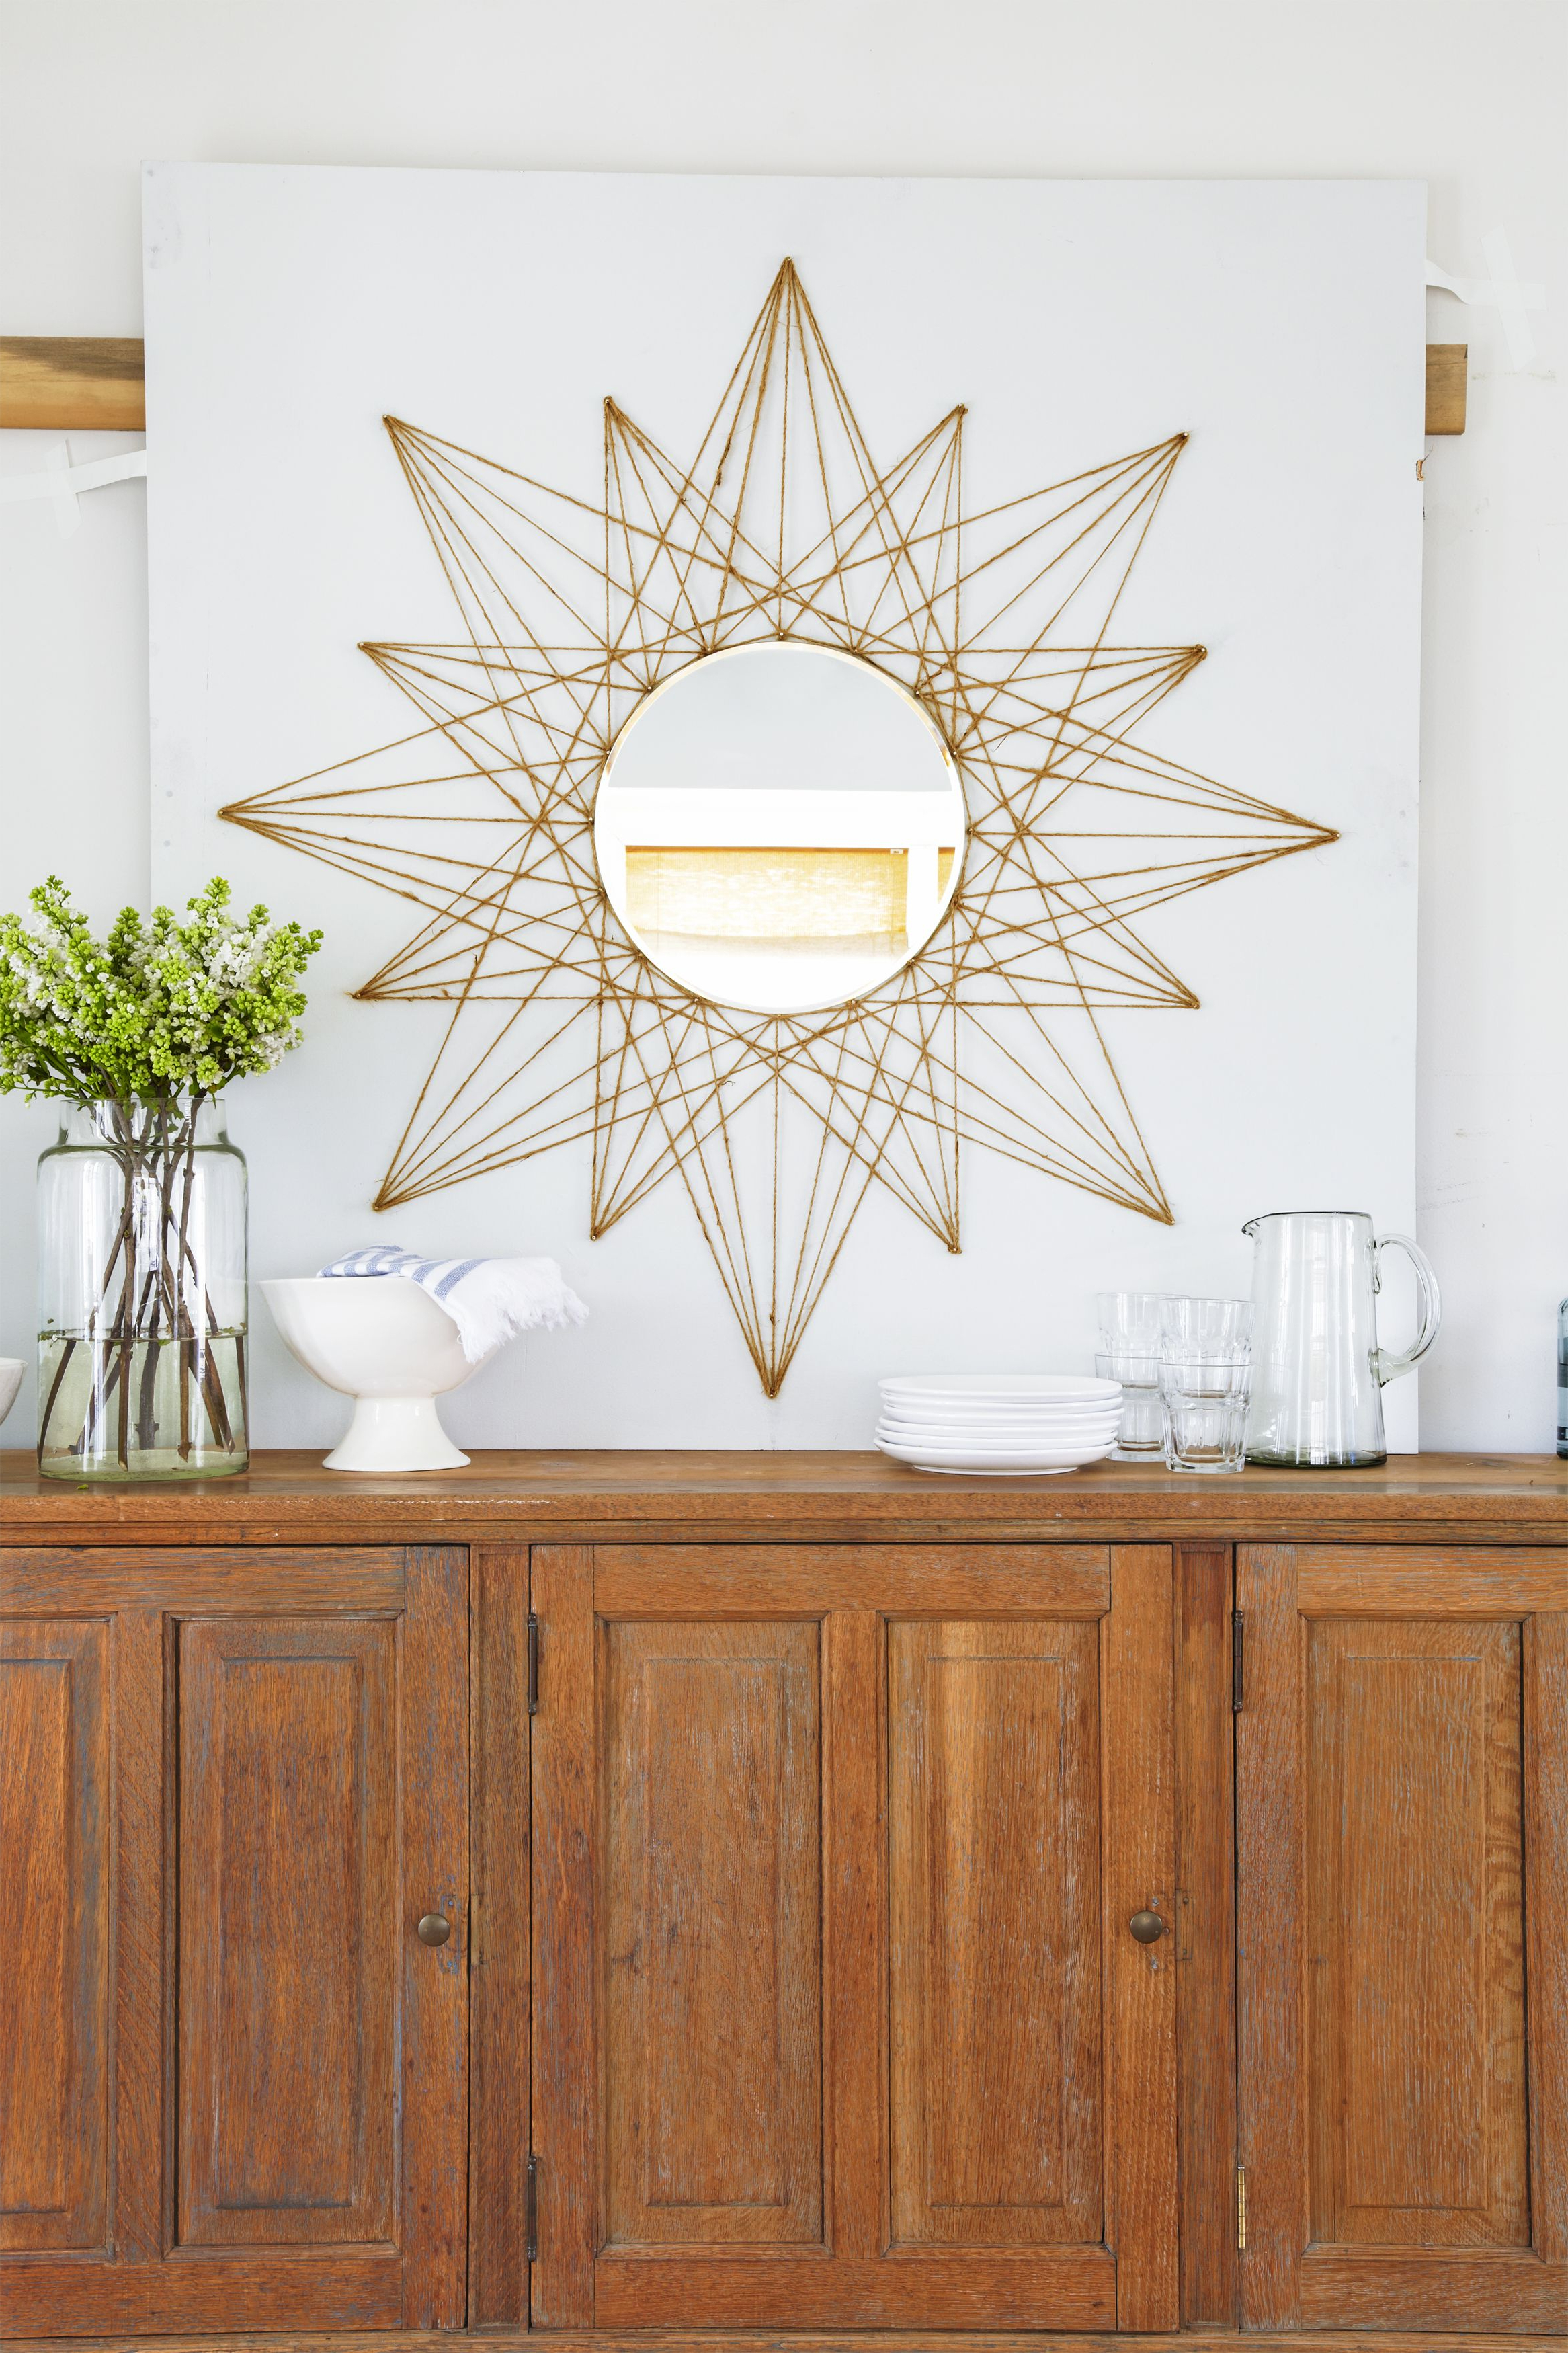 This Simple Mirror Diy Will Upgrade Any Boring Wall In Your Home In Well Known Diy Wall Mirrors (Gallery 6 of 20)